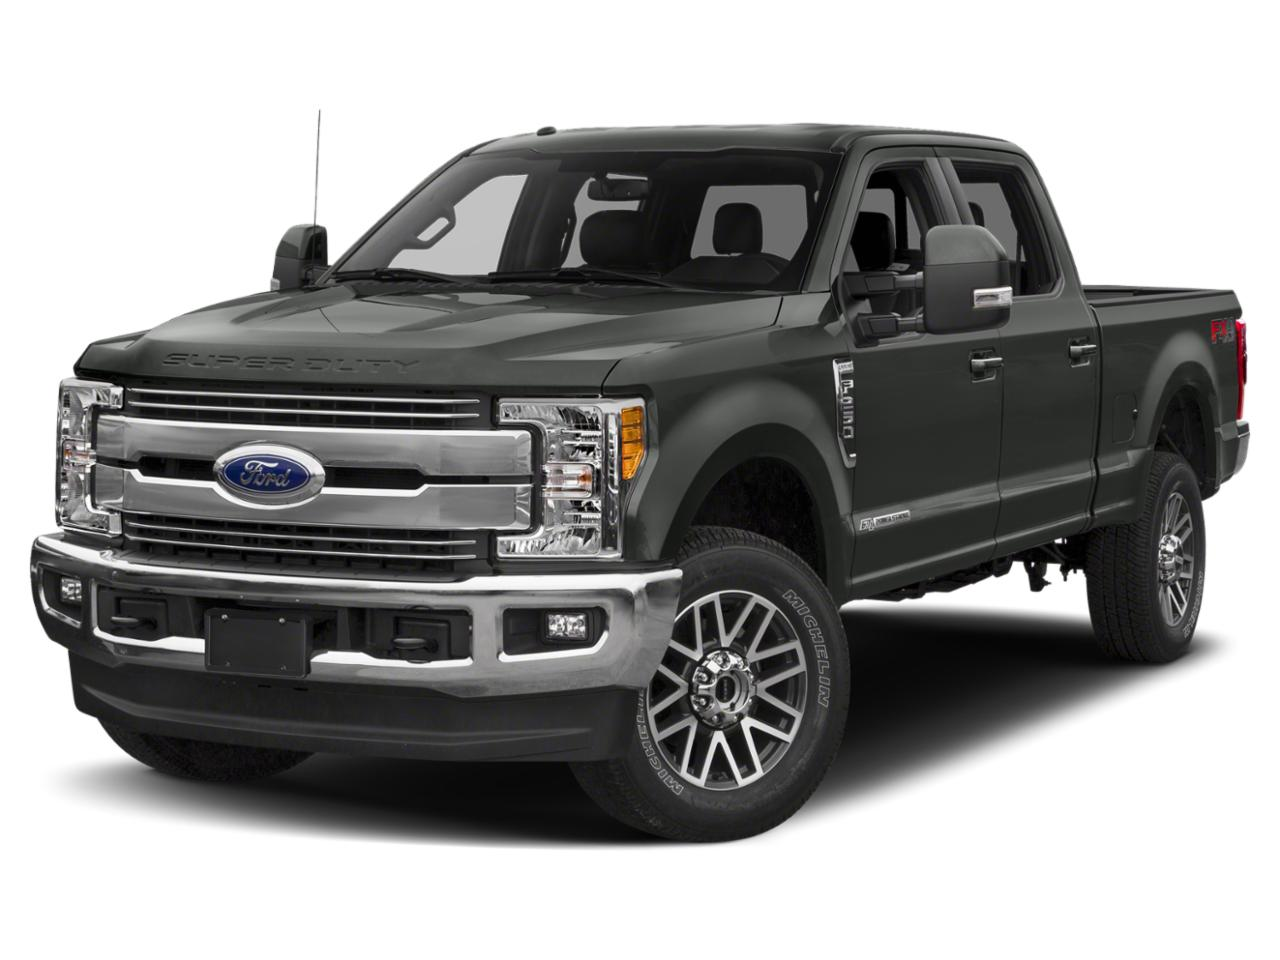 2019 Ford Super Duty F-250 SRW Vehicle Photo in Fort Worth, TX 76116